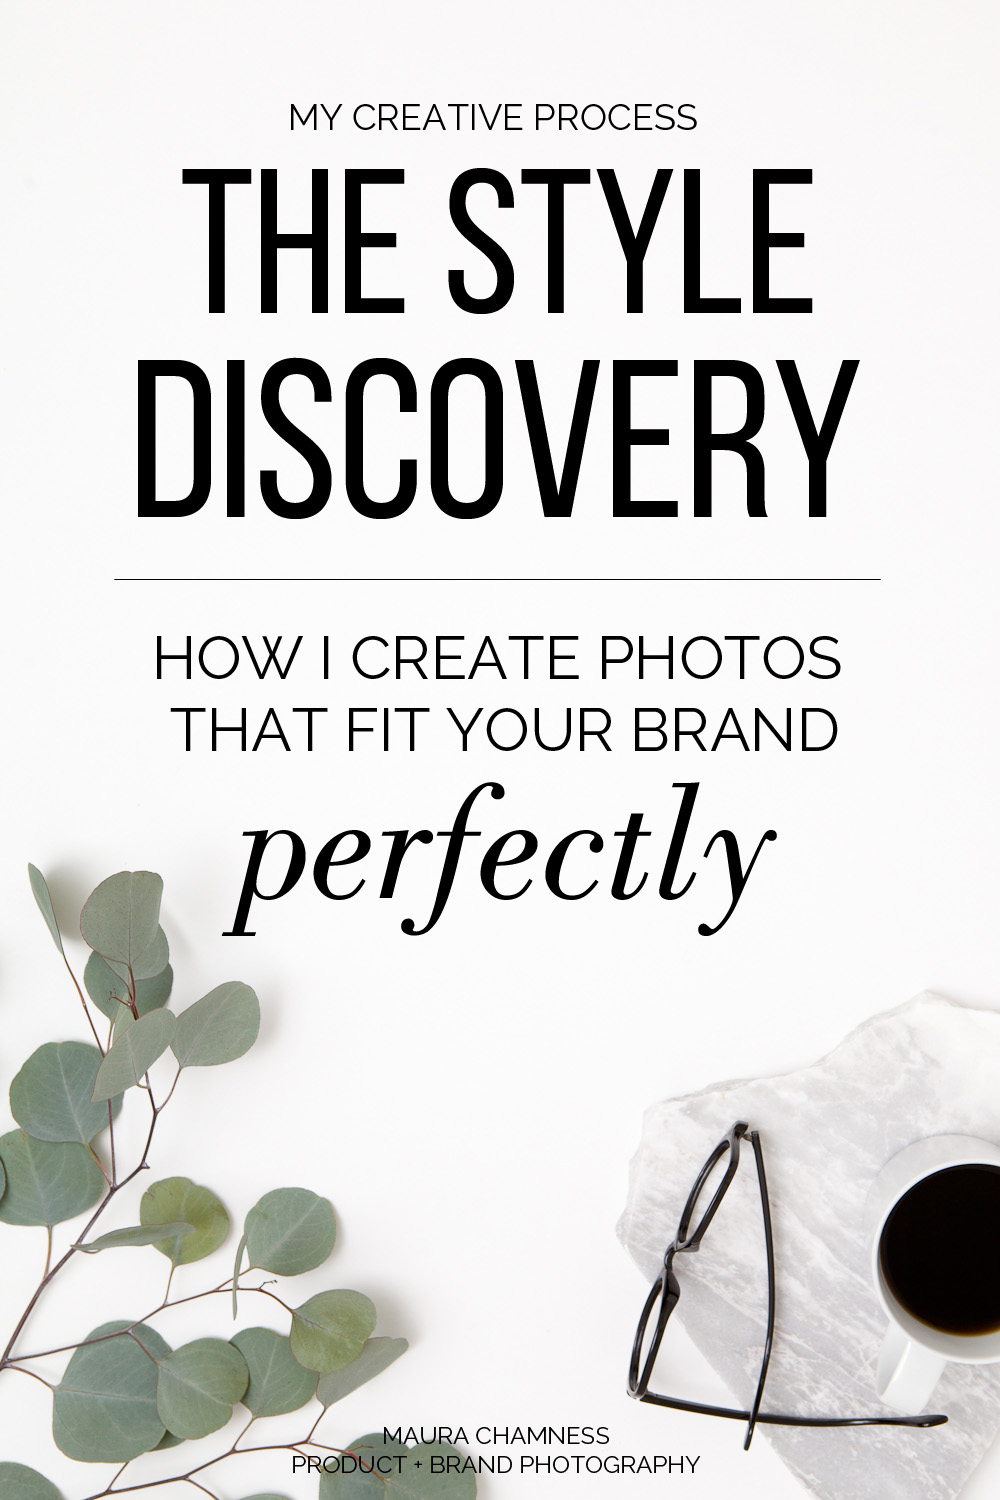 The Style Discovery Process by Maura Chamness Photography